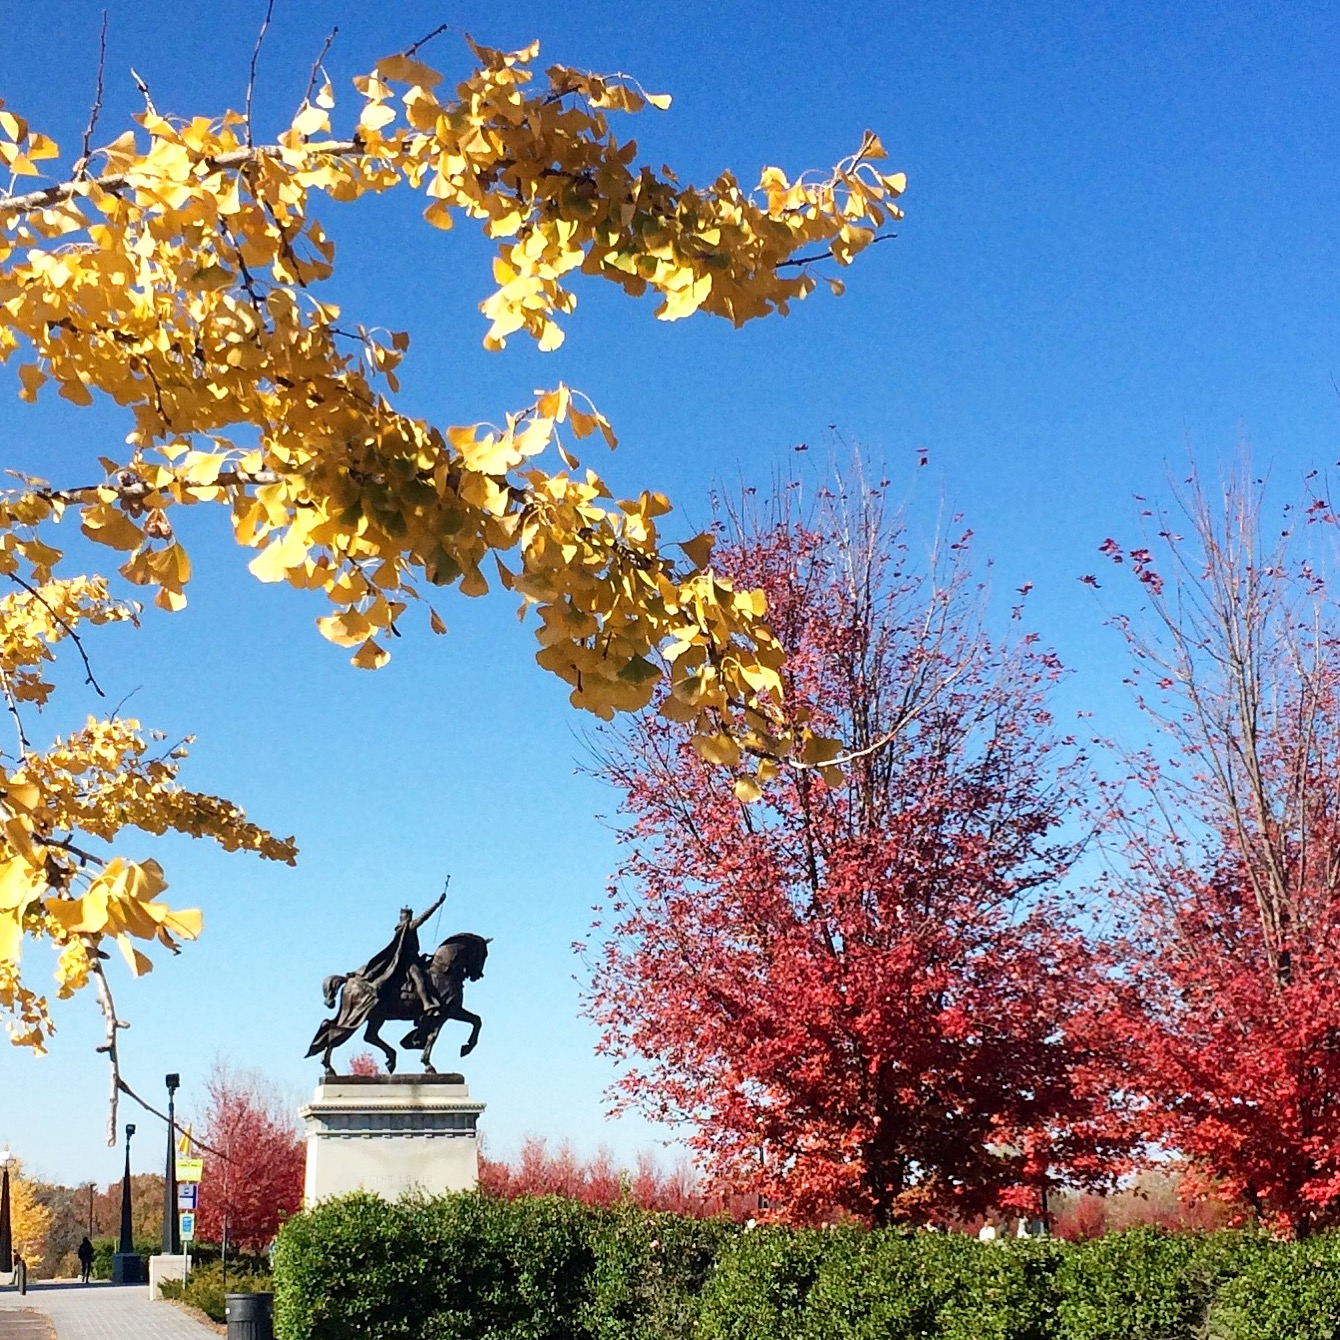 Saint Louis in Fall Colors